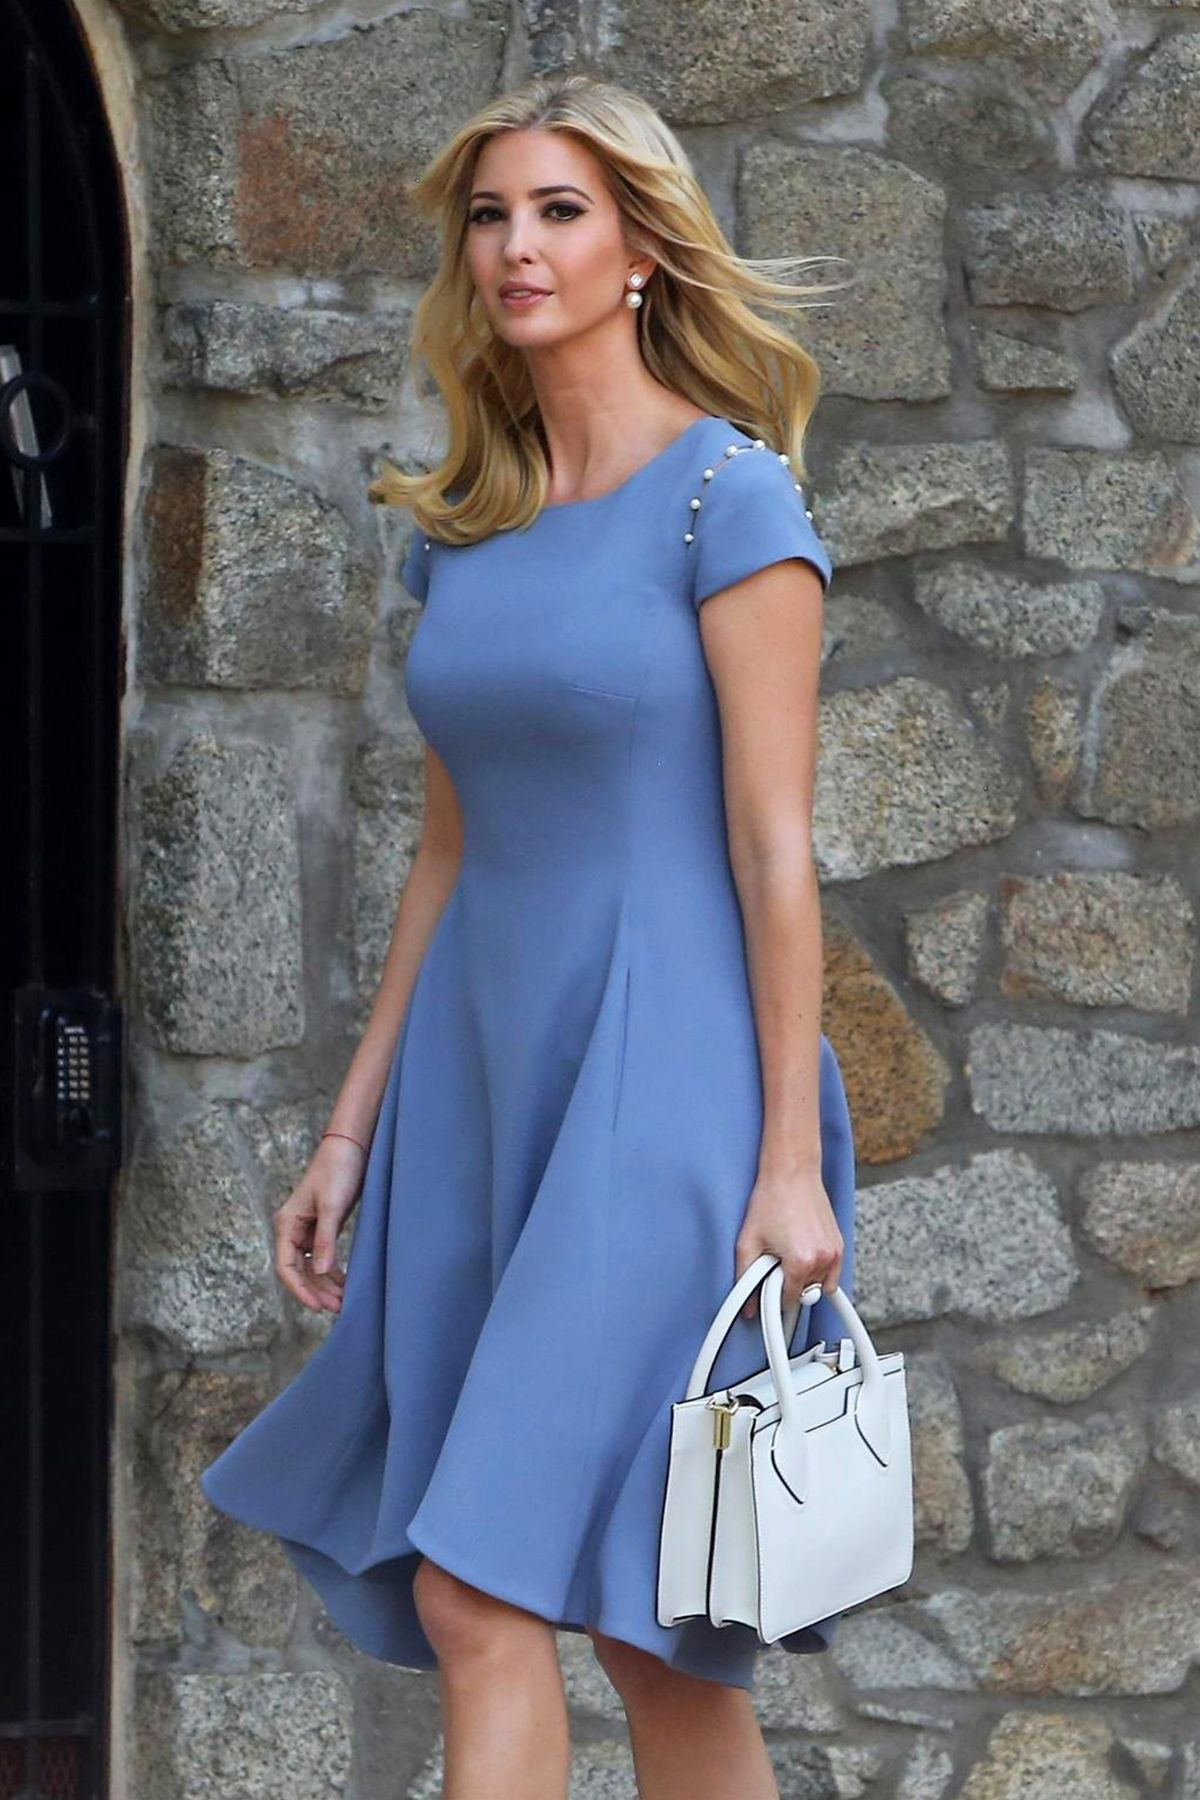 IVANKA TRUMP Steps Out for Work in Washington D.C. 06/27 ...